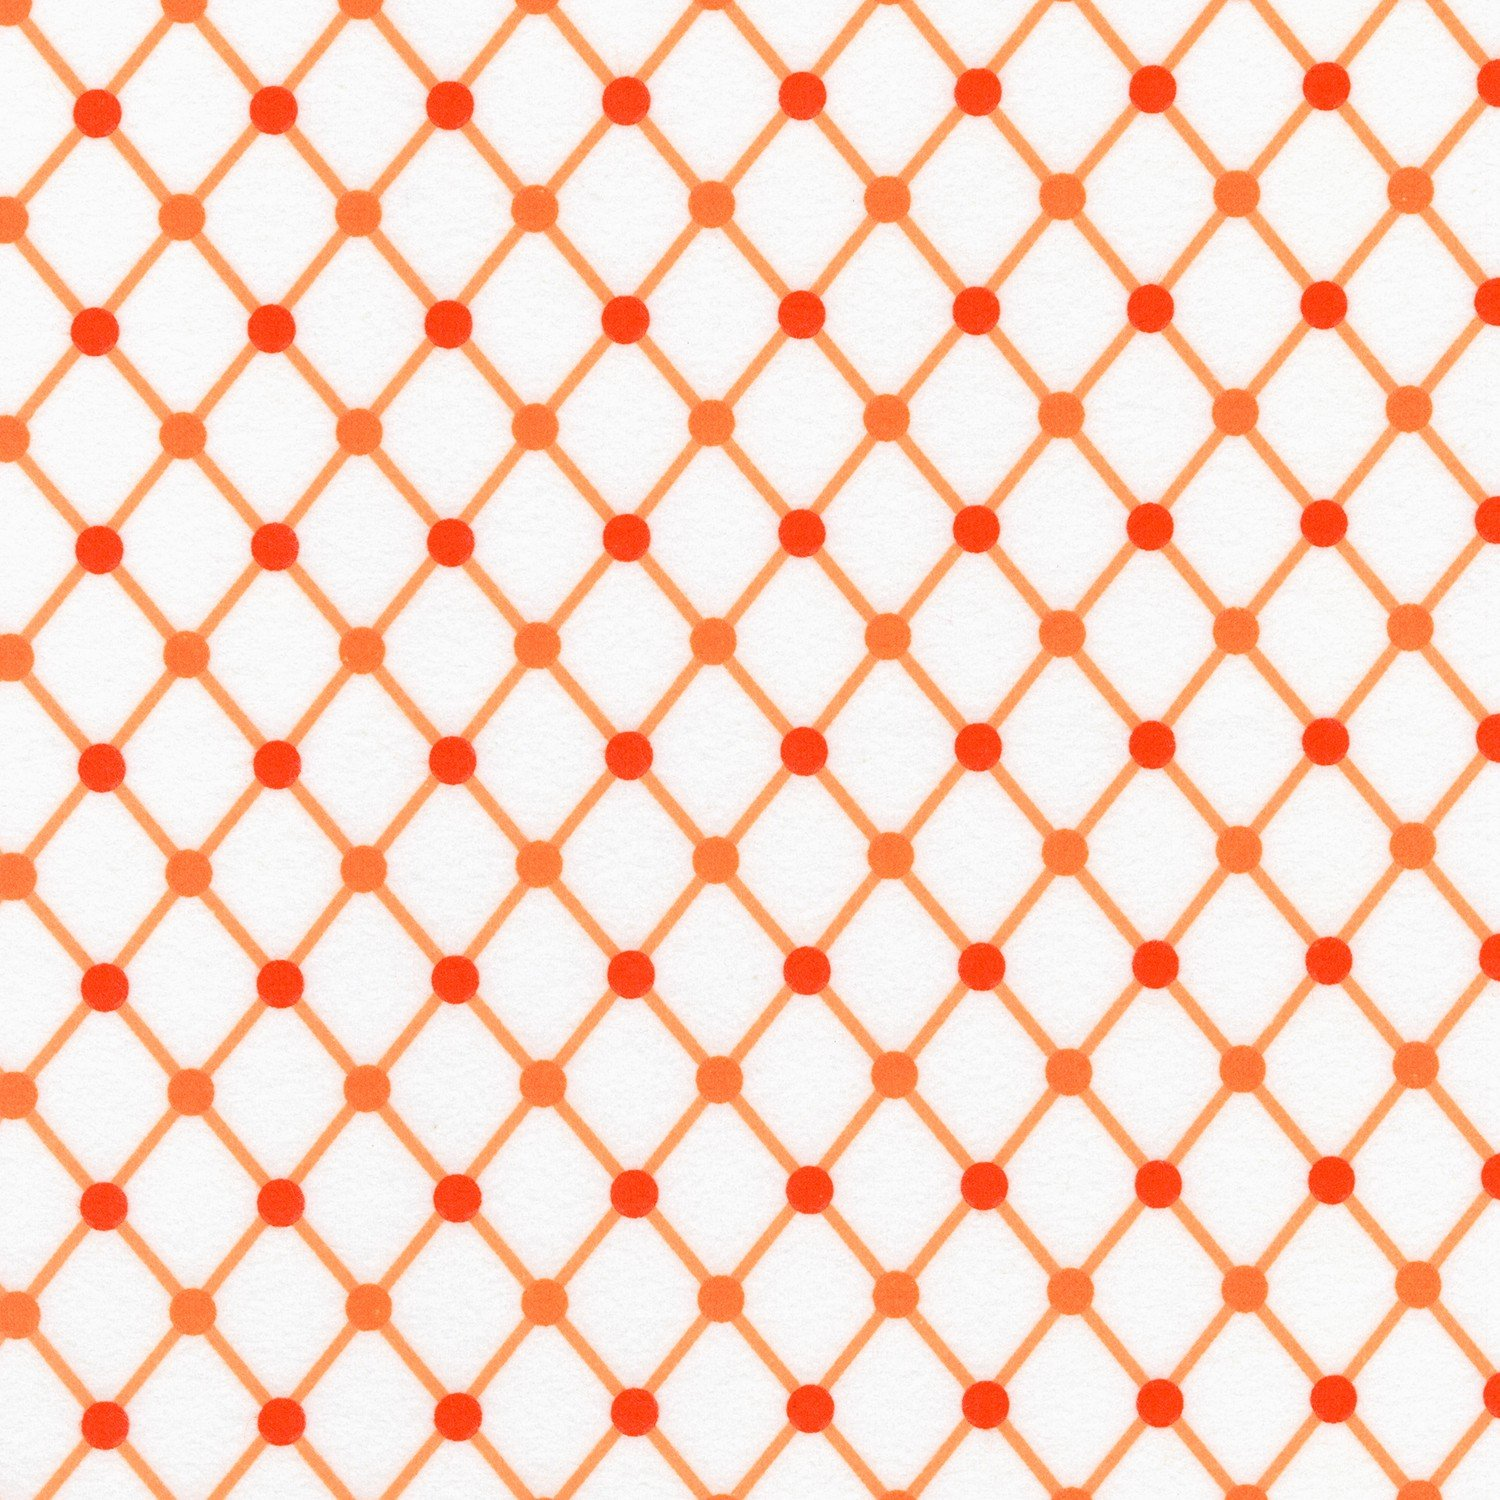 RK - Cozy Cotton SRKF-16229-8 Orange Diamonds Flannel